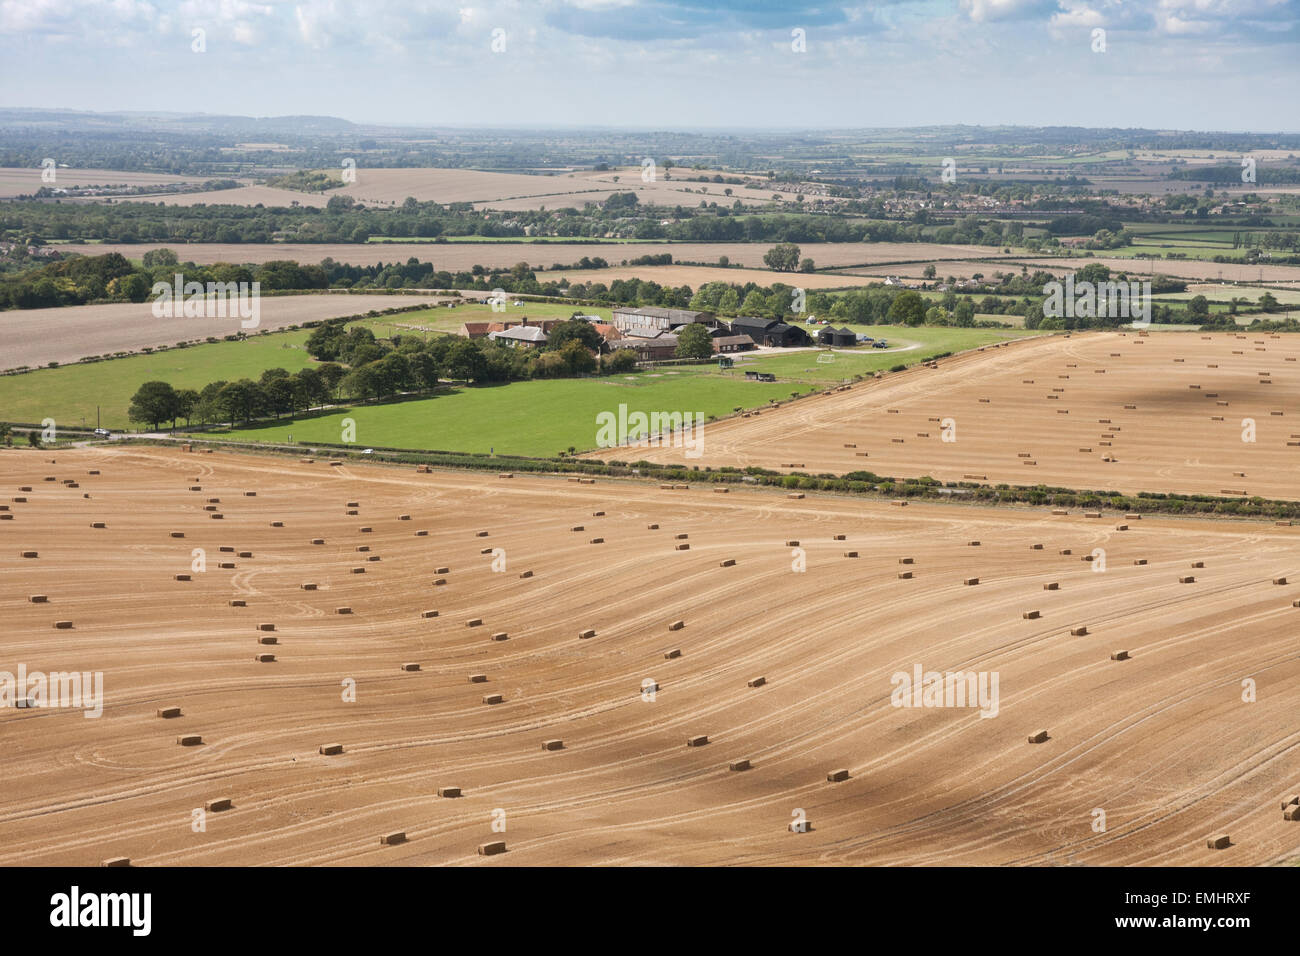 Elevated landscape shot of Hay bales in a wheat field in the Chiltern hills, UK - Stock Image